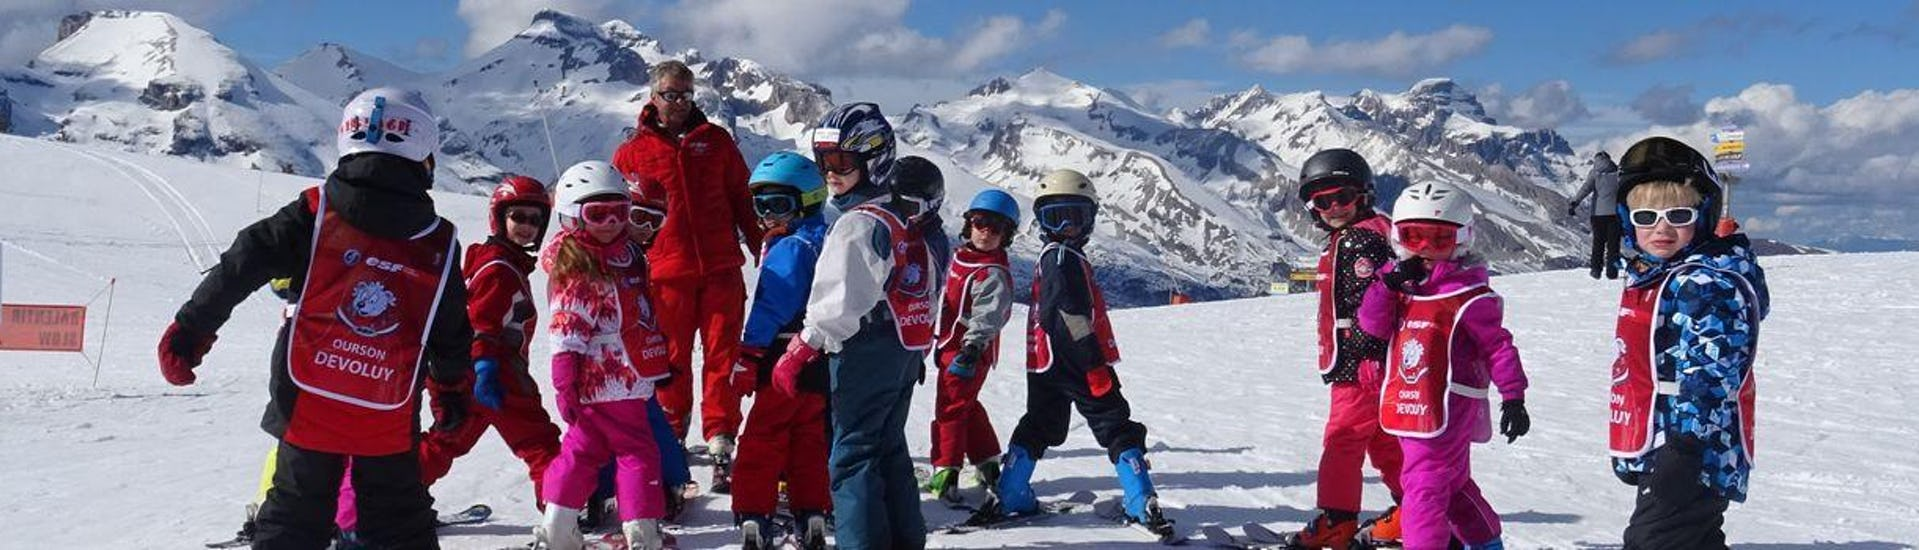 Kids are standing at the top of the slope ready to start their Kids Ski Lessons (6-12 years) - Advanced with the ski school ESF du Dévoluy.